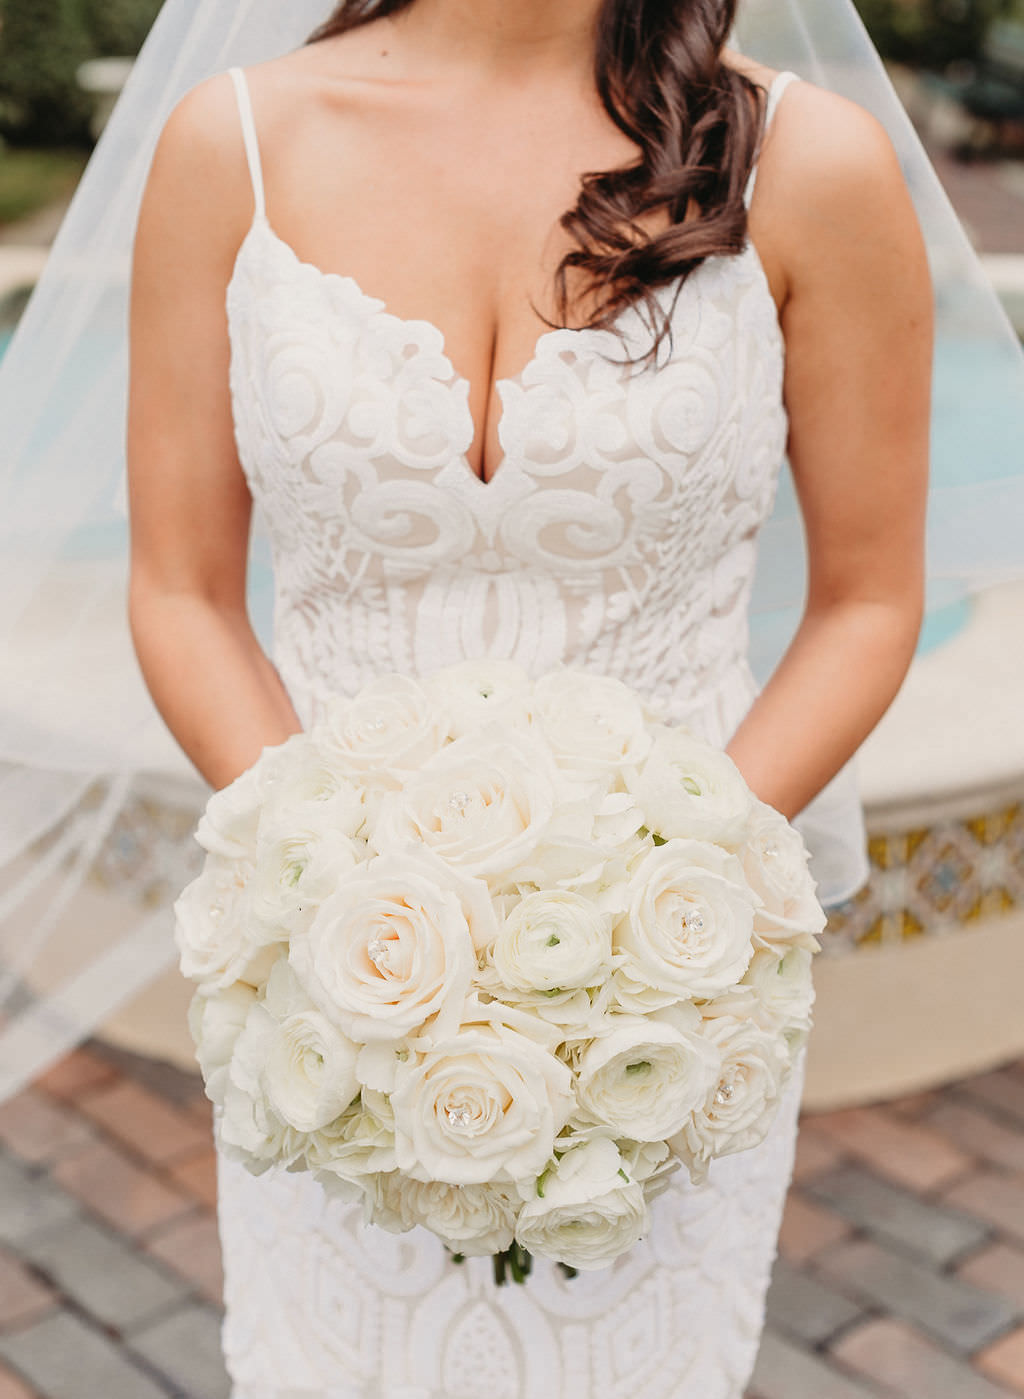 Classic Bride Wedding Portrait in Lace Spaghetti Strap Plunging Sweetheart Neckline Hayley Paige Wedding Dress with Traditional Round Ivory Rose and White Floral Bridal Bouquet